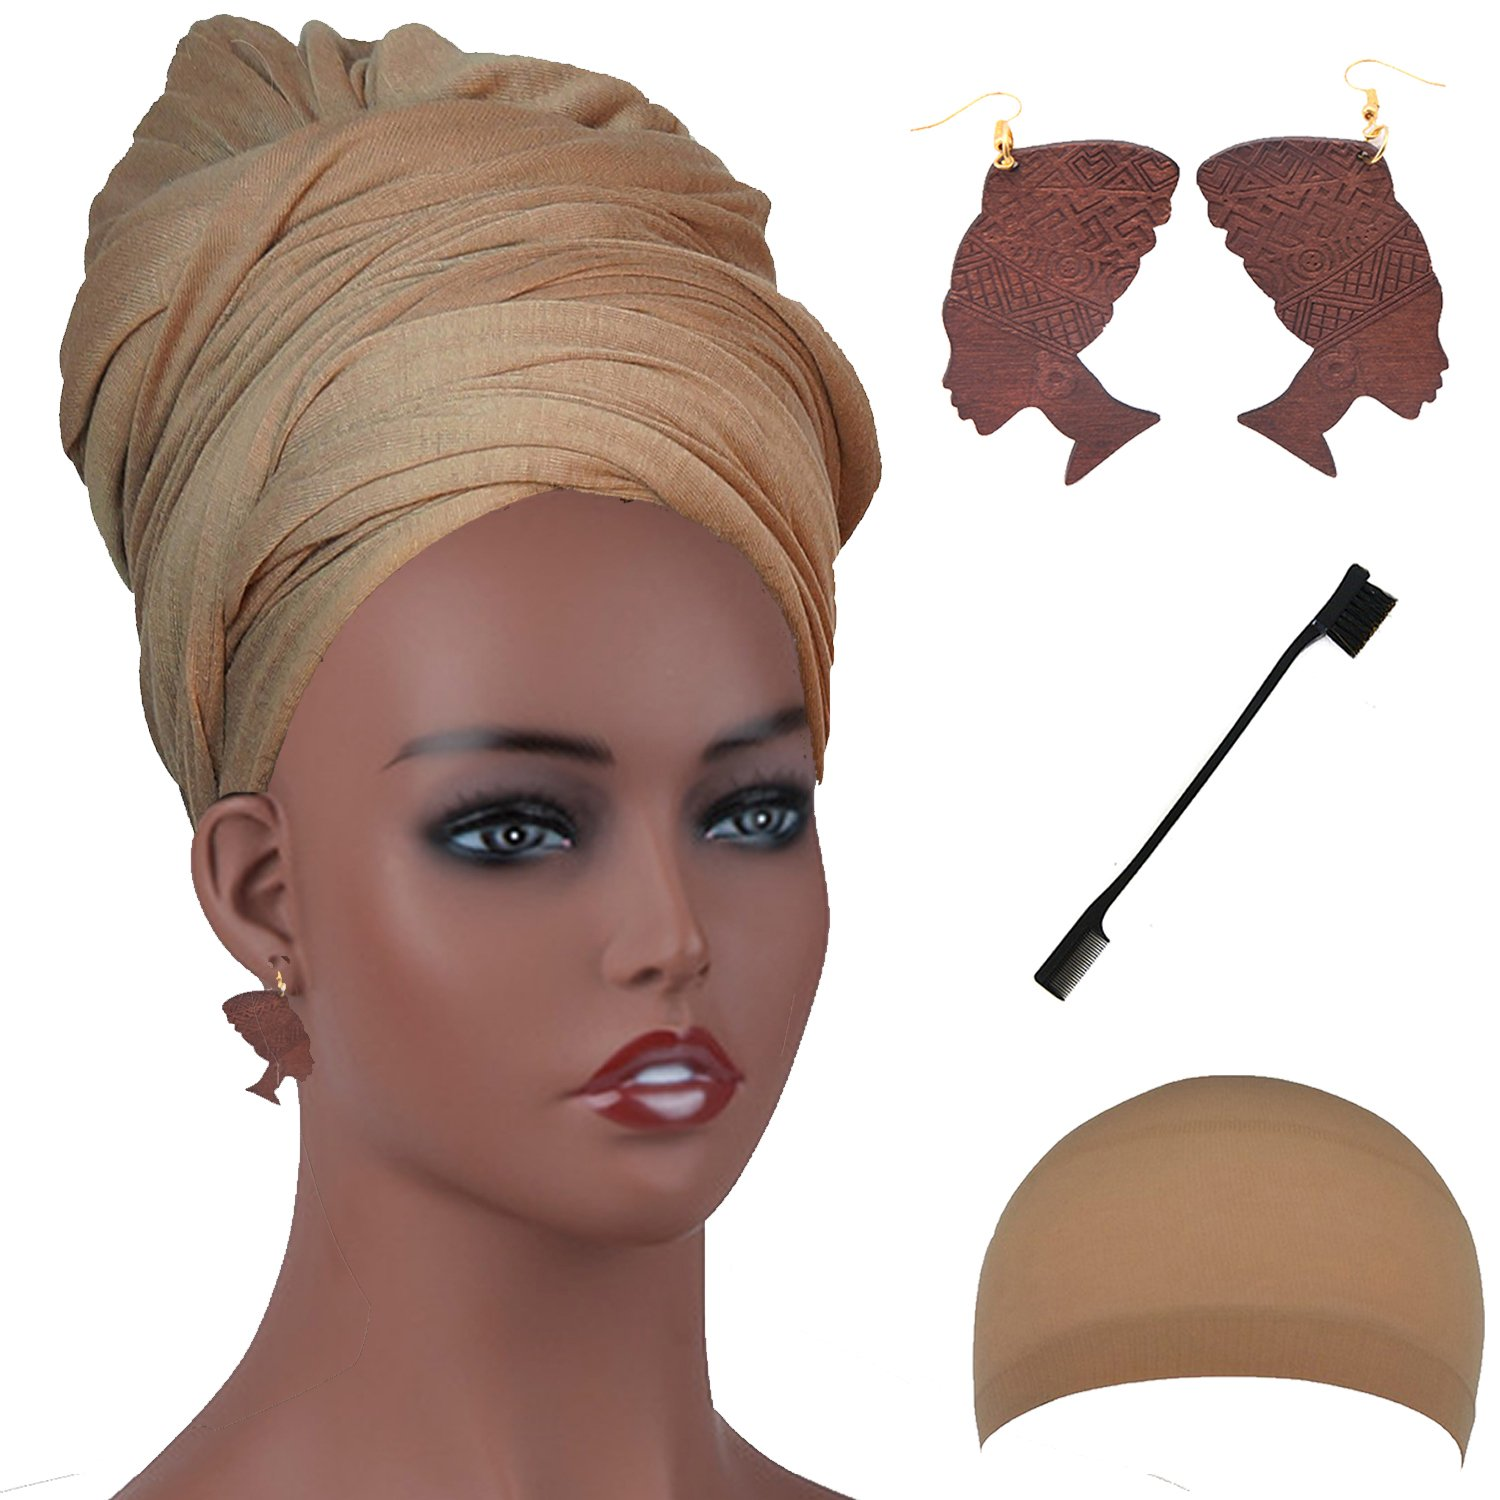 Long Stretch Head Wrap Set- Solid Color African Turban Hair Scarf Tie, Double Sided Edge Control Hair Brush Comb Combo,Wooden Colored Turban African Woman Earrings,Wig Cap (OneSize, Camel)